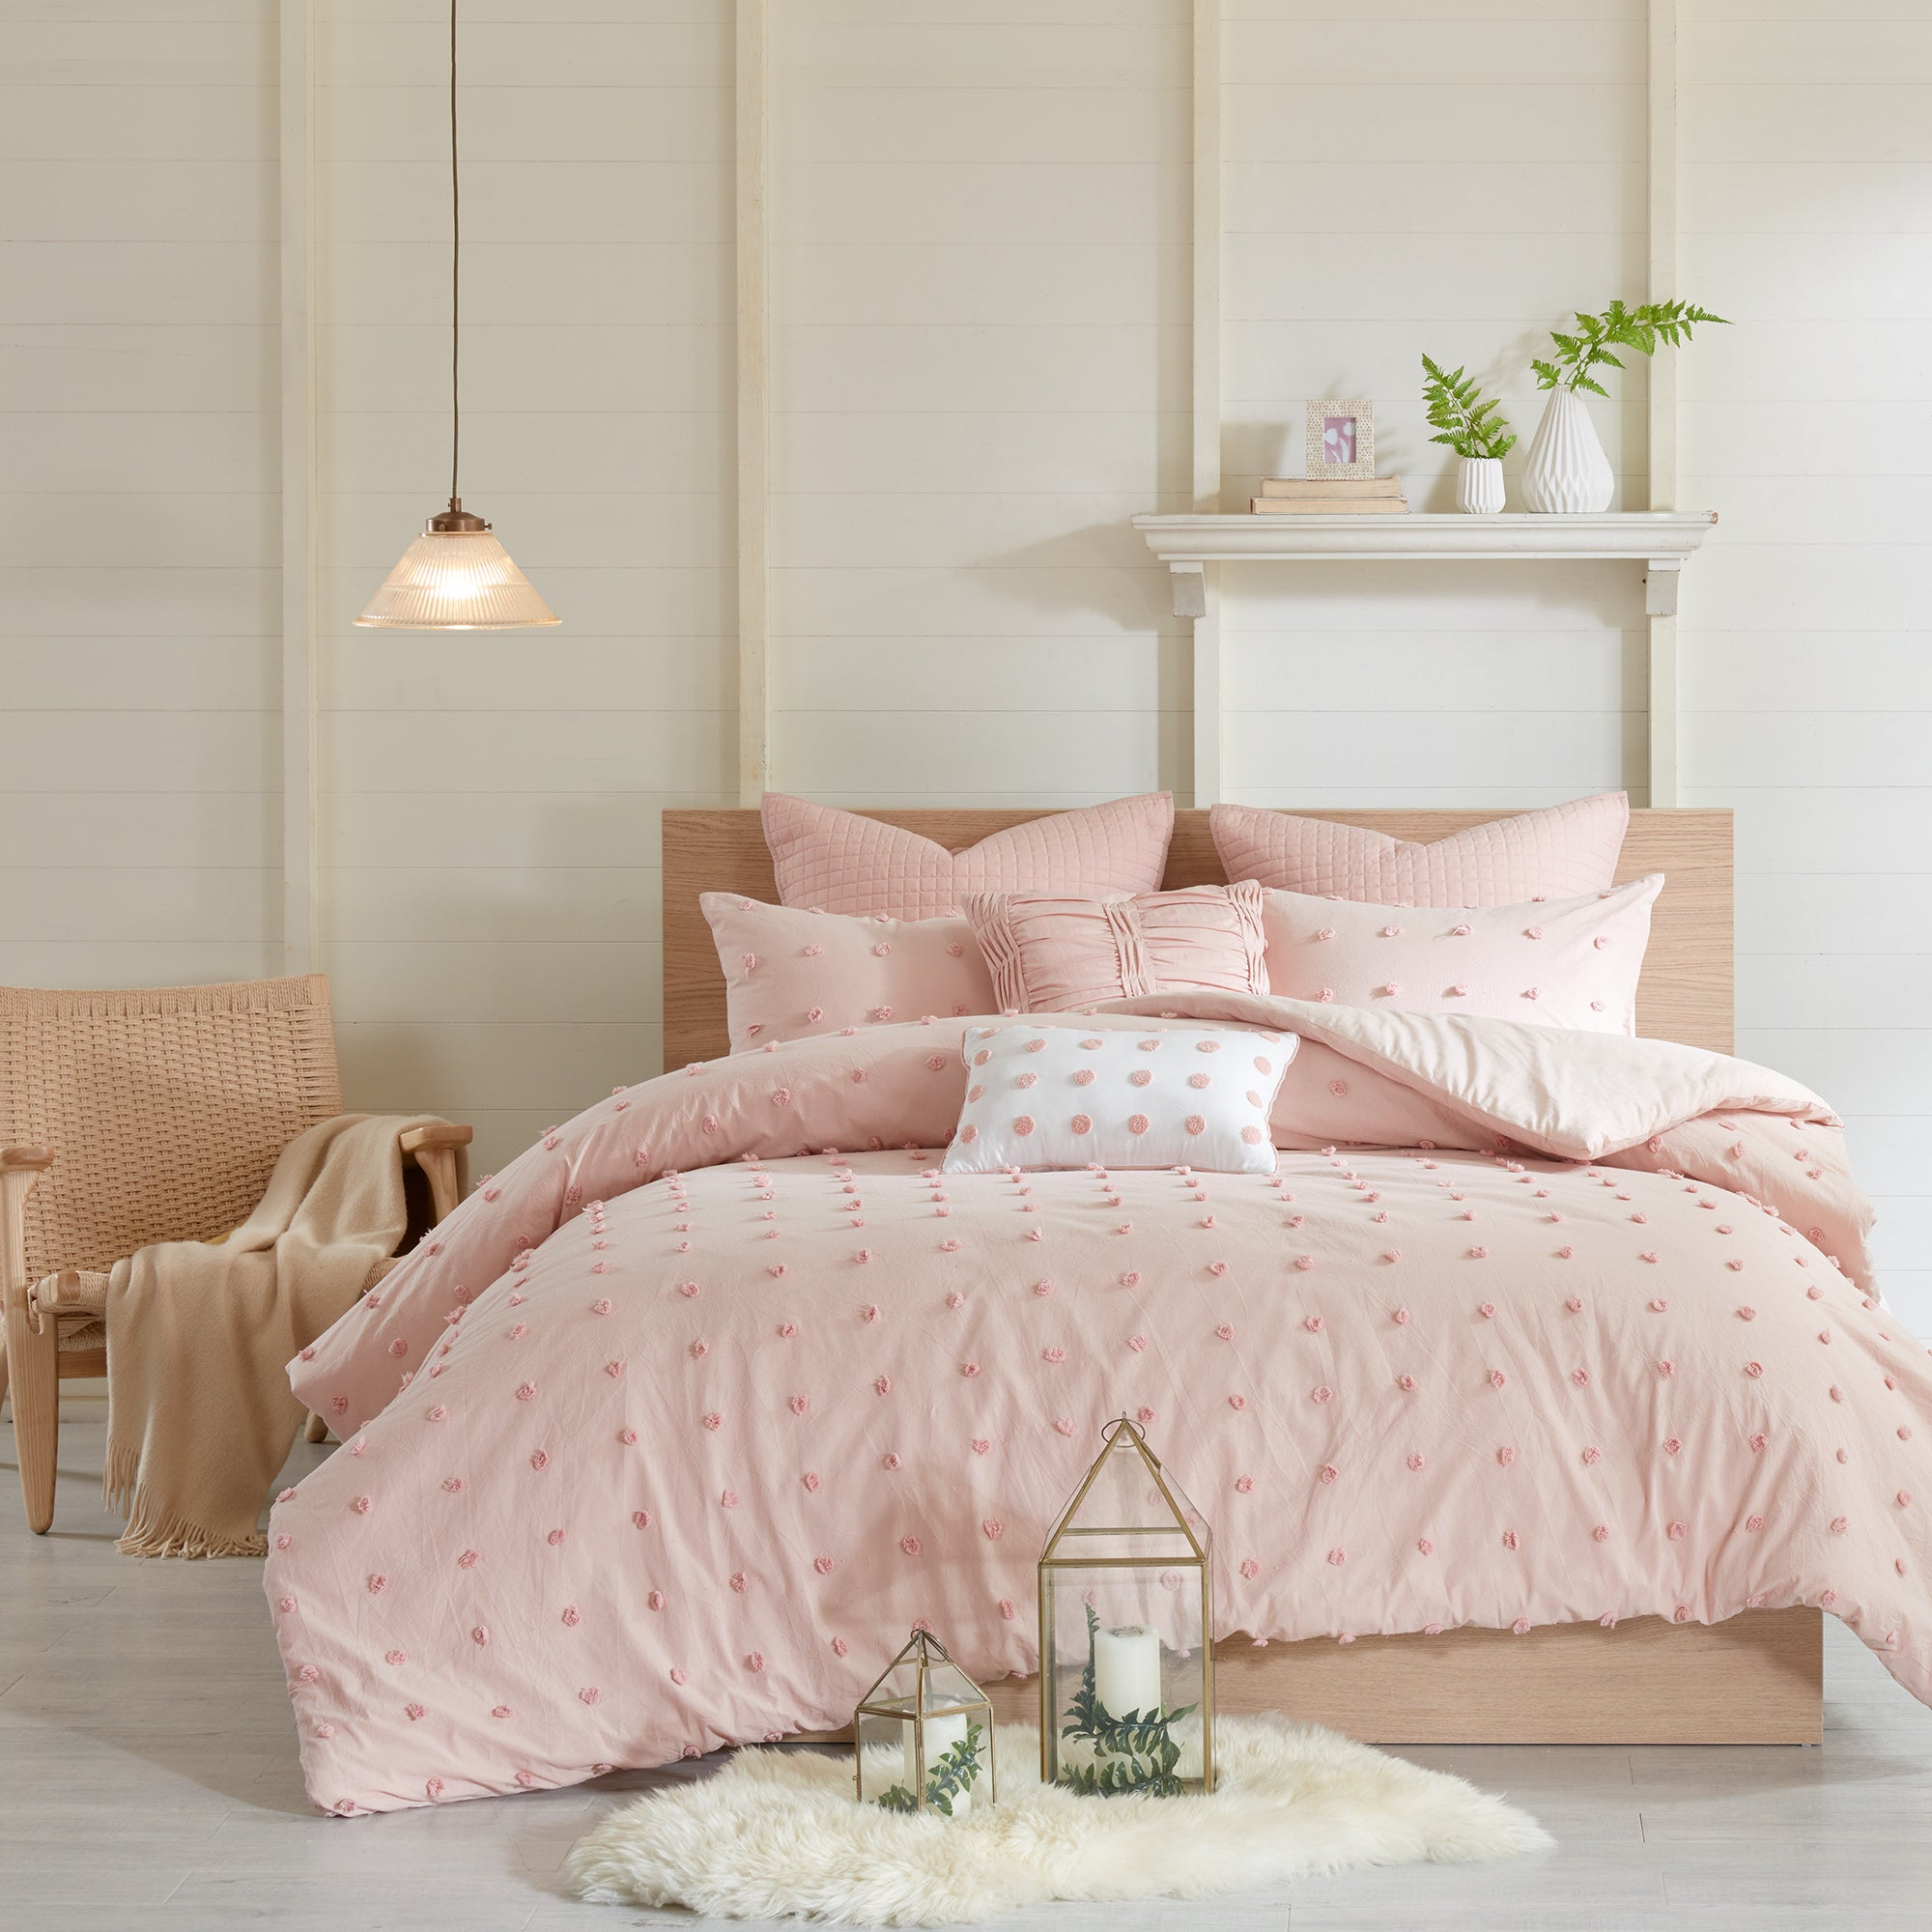 pink curtains and view best colorful duvet rooms covers larger kids bedding about ideas l